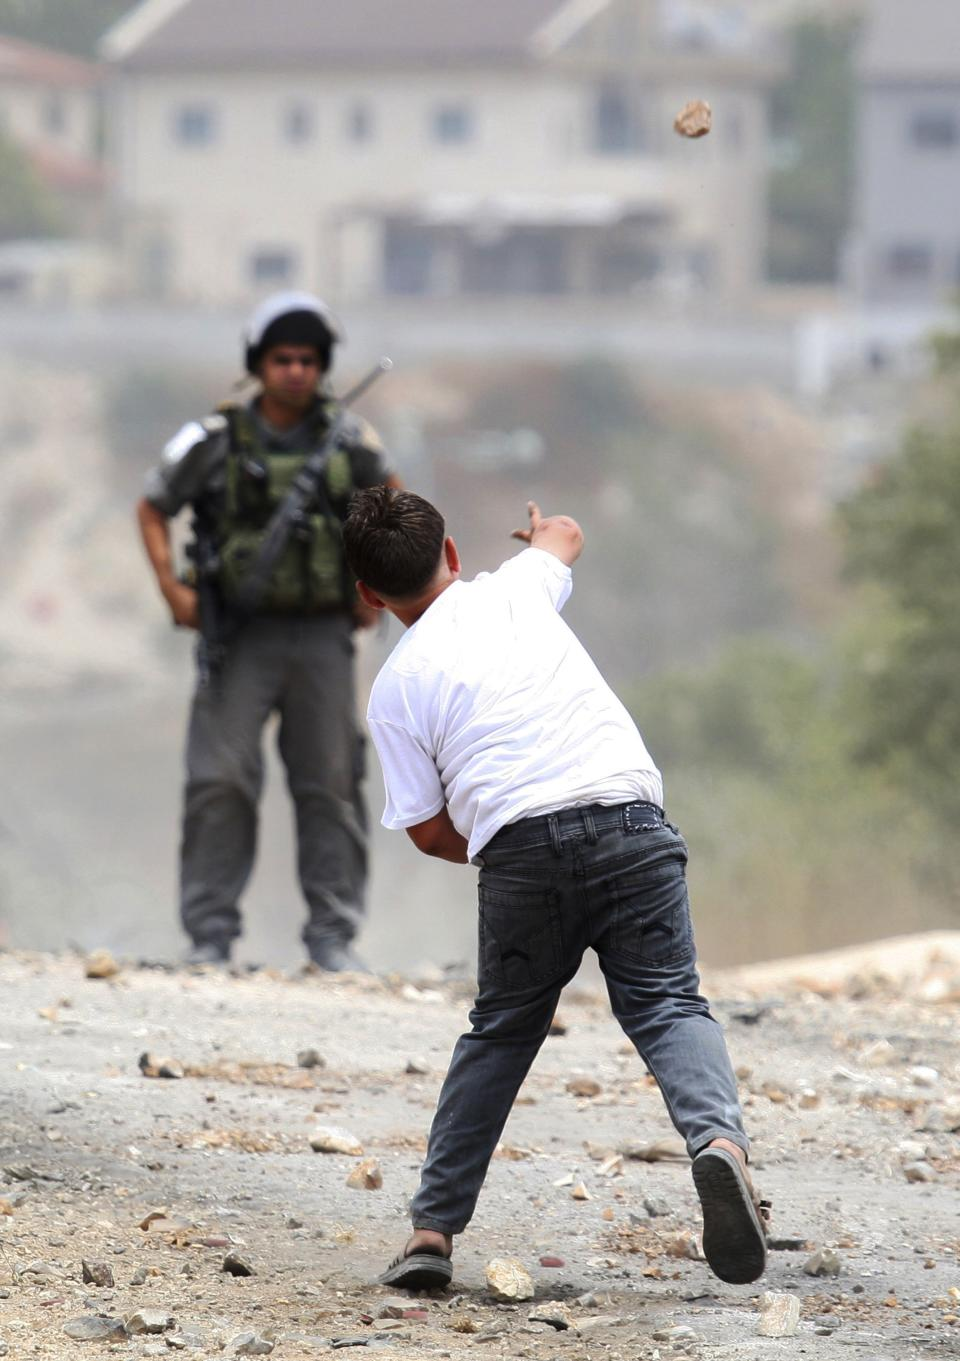 A Palestinian youth throws a stone at an Israeli border policeman during clashes with Israeli troops after the weekly protest against the expansion of the nearby Jewish settlement of Kdumim, in the northern West Bank village of Kufr Qaddum, Friday, June 22, 2012. (AP Photo/Nasser Ishtayeh)